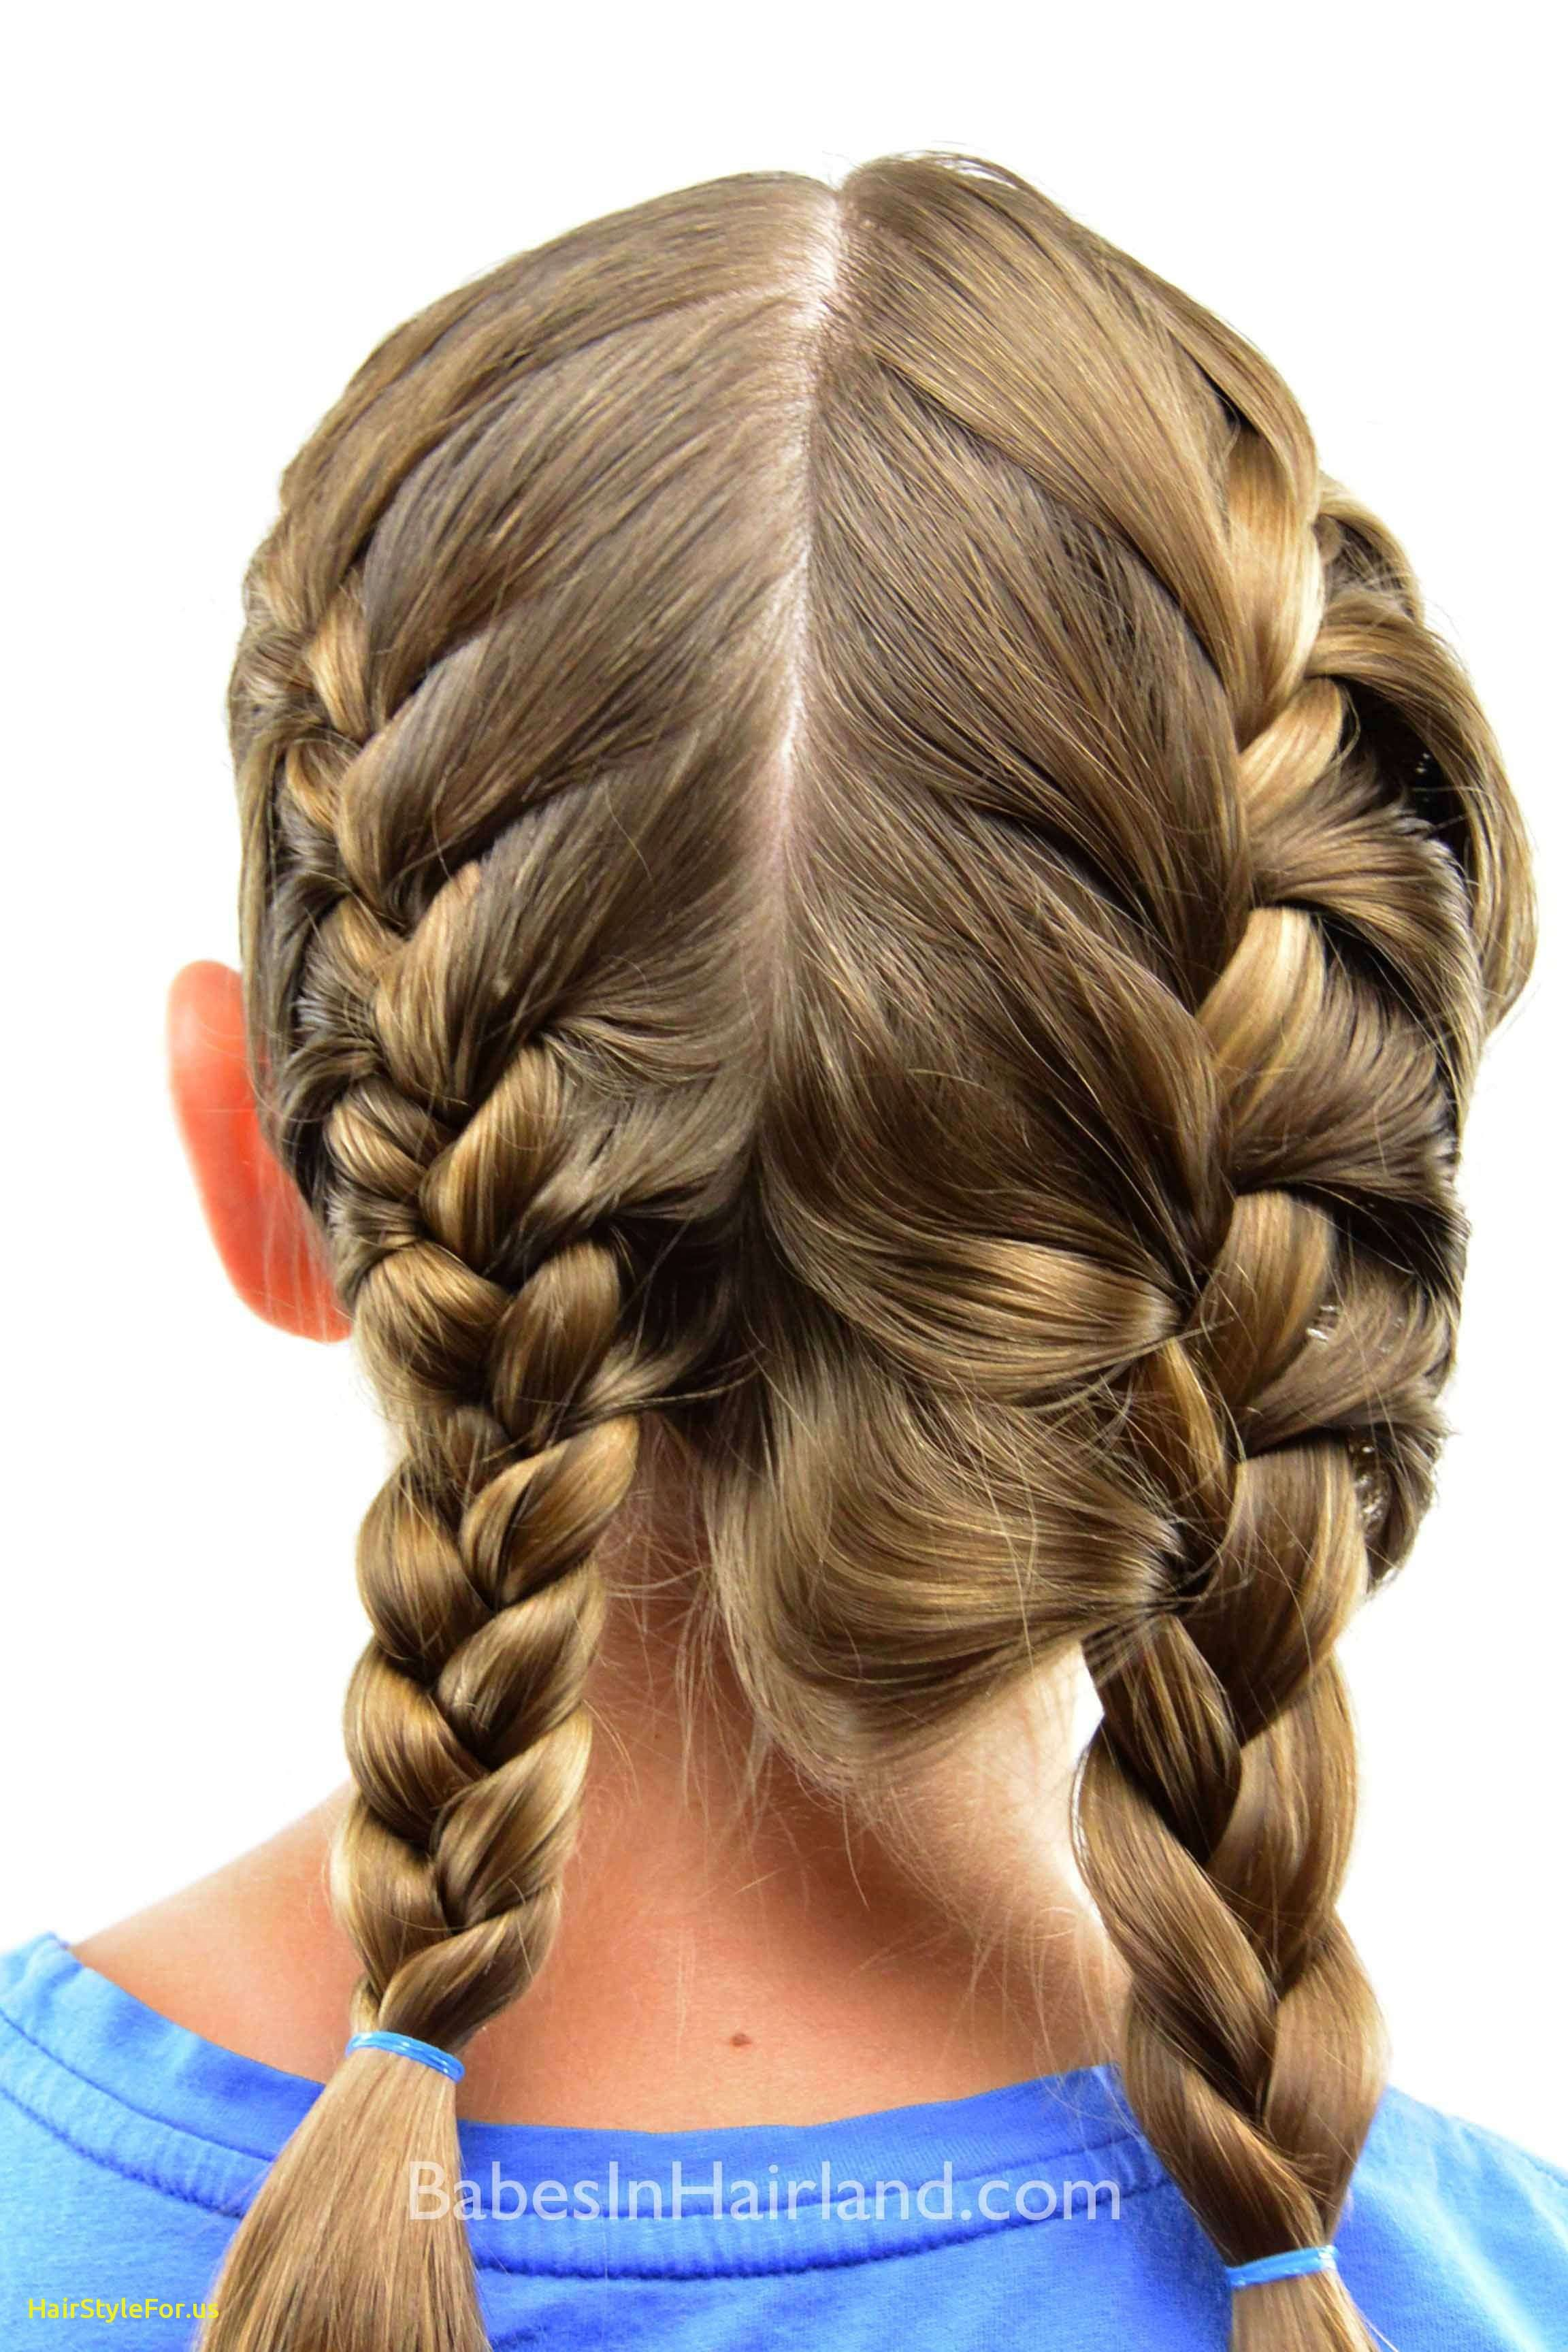 Fresh How To Do Two French Braids On Yourself Pinterest French Braid